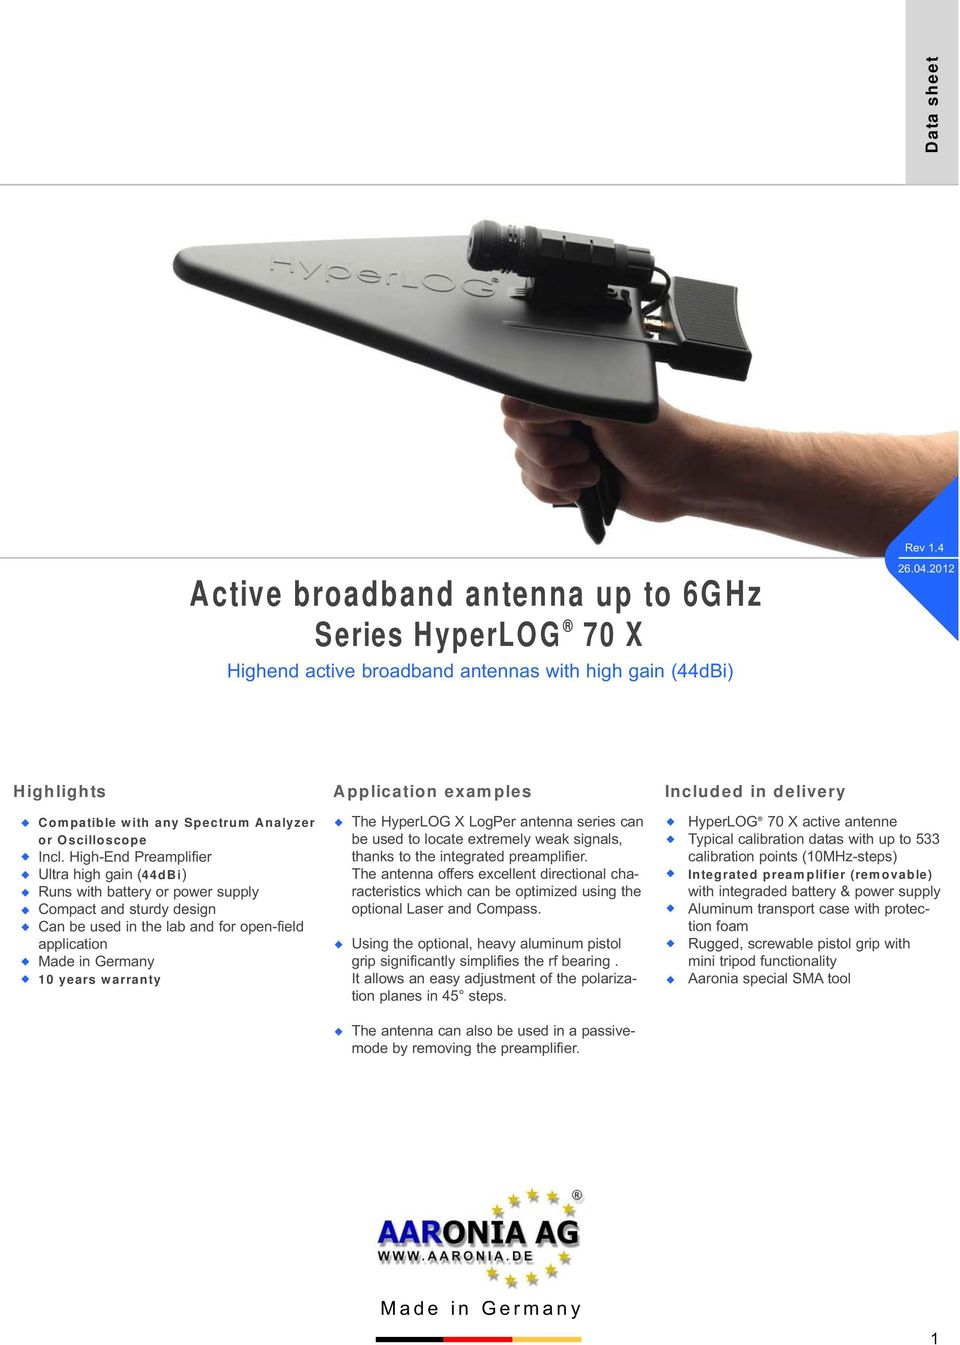 broadband antenna up to 6GHz Series HyperLOG 70 X Highend active broadband antennas ith high gain (44dBi) Application examples The HyperLOG X LogPer antenna series can be used to locate extremely eak